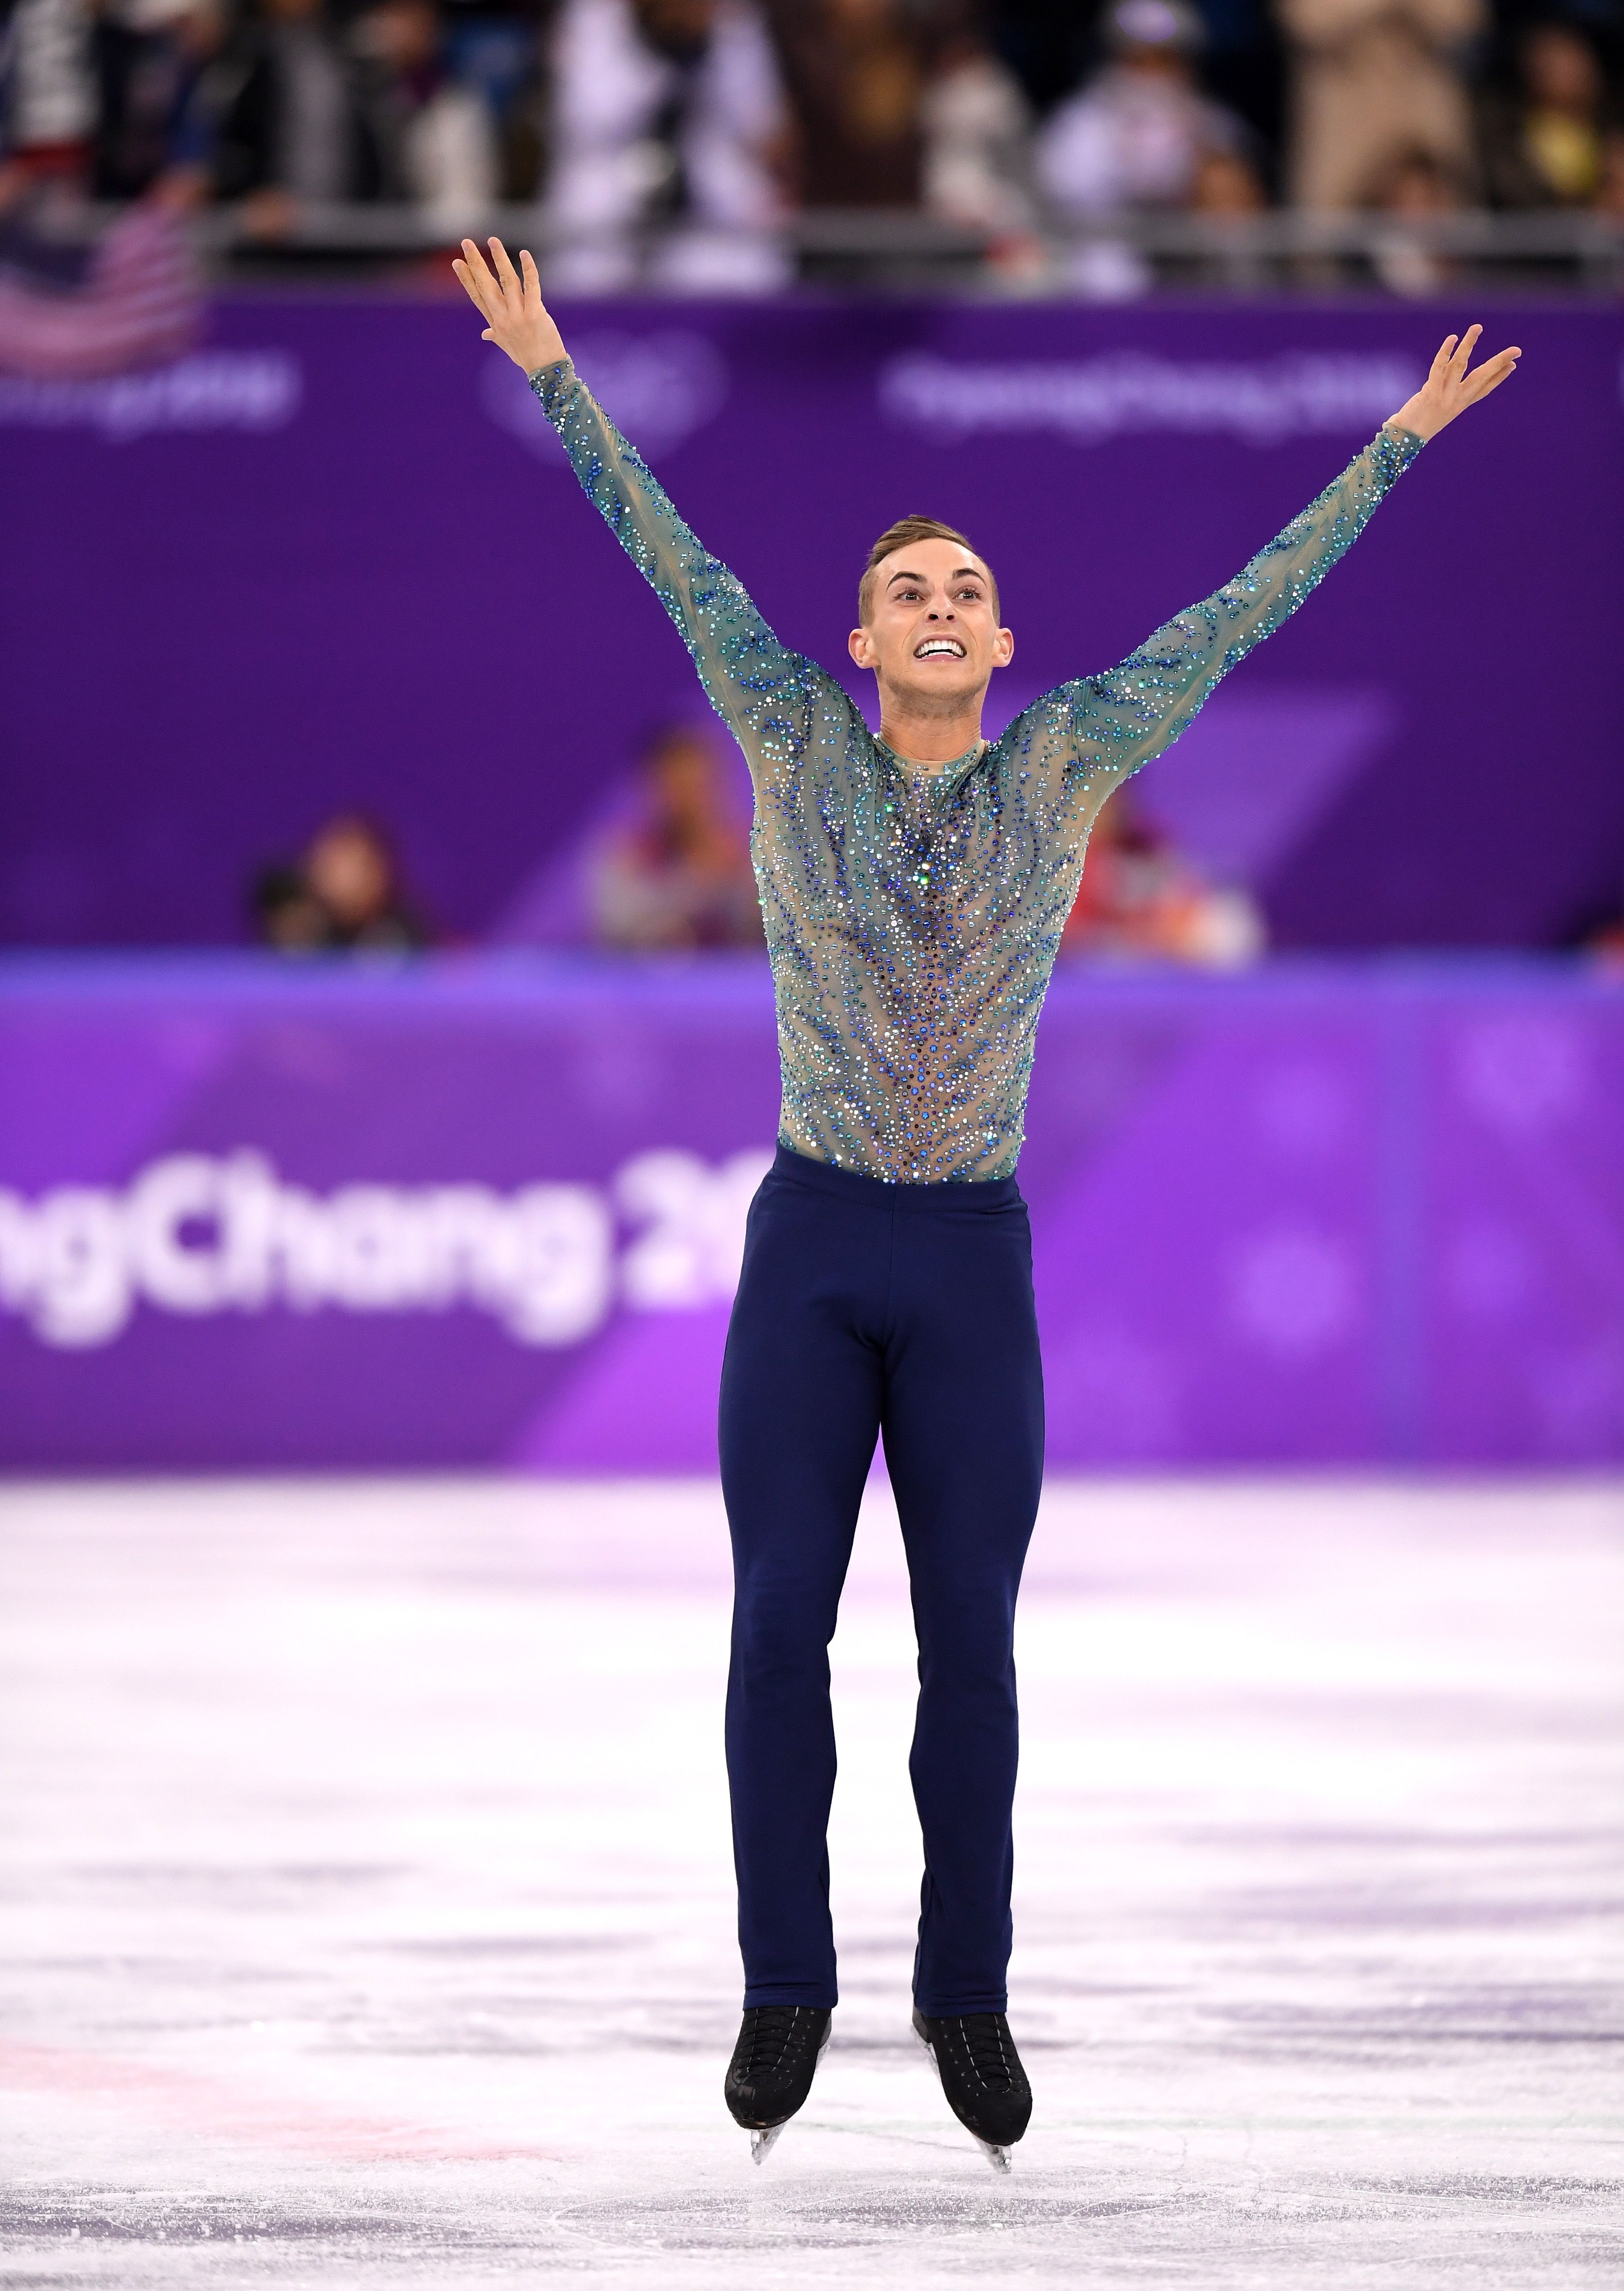 30 Best Ice Skating Outfits Iconic Outfits Worn By Famous Figure Skaters